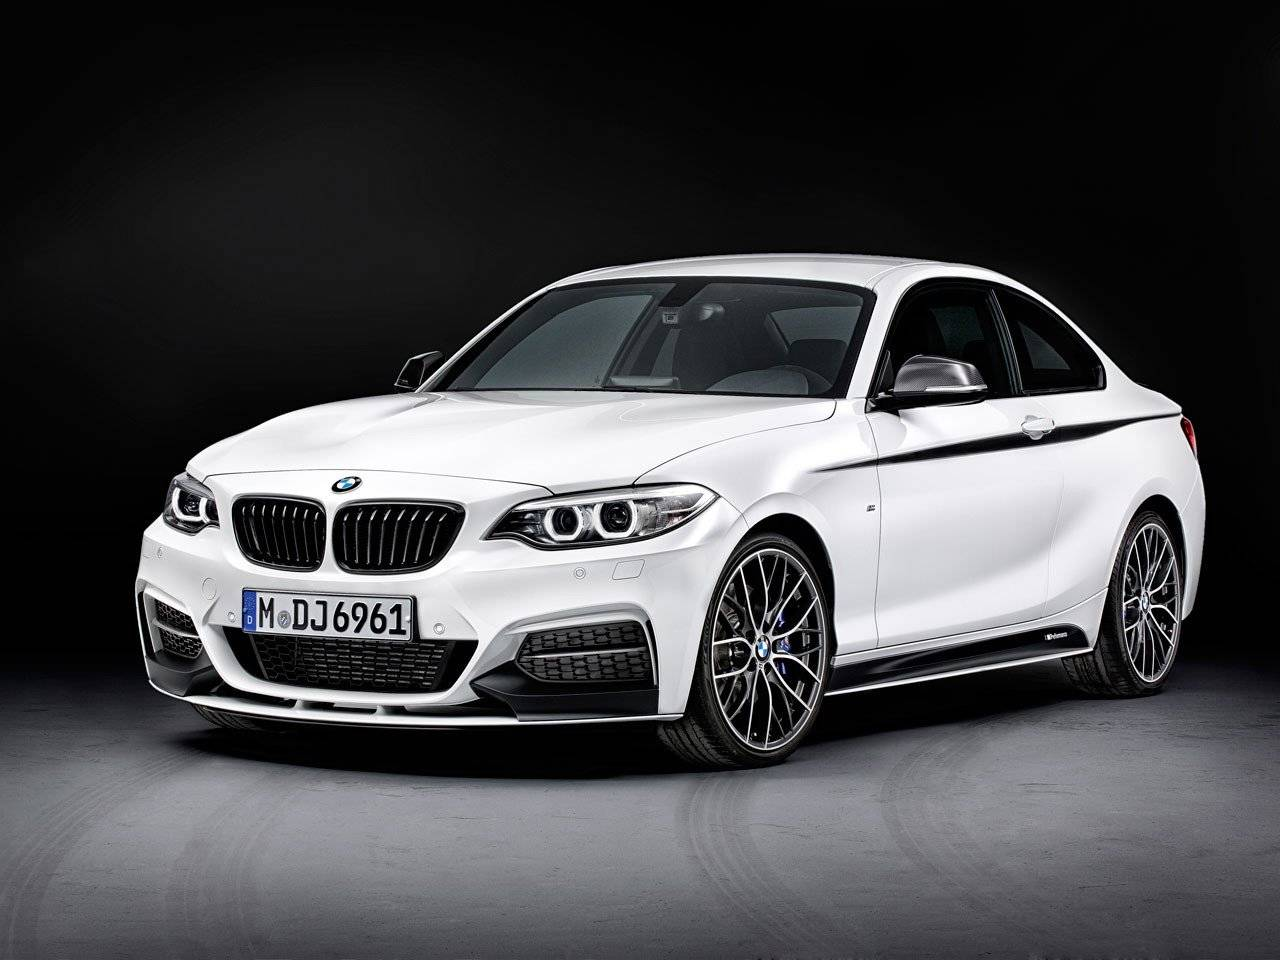 bmw 2 serie coup met m performance opsmuk tuning styling. Black Bedroom Furniture Sets. Home Design Ideas